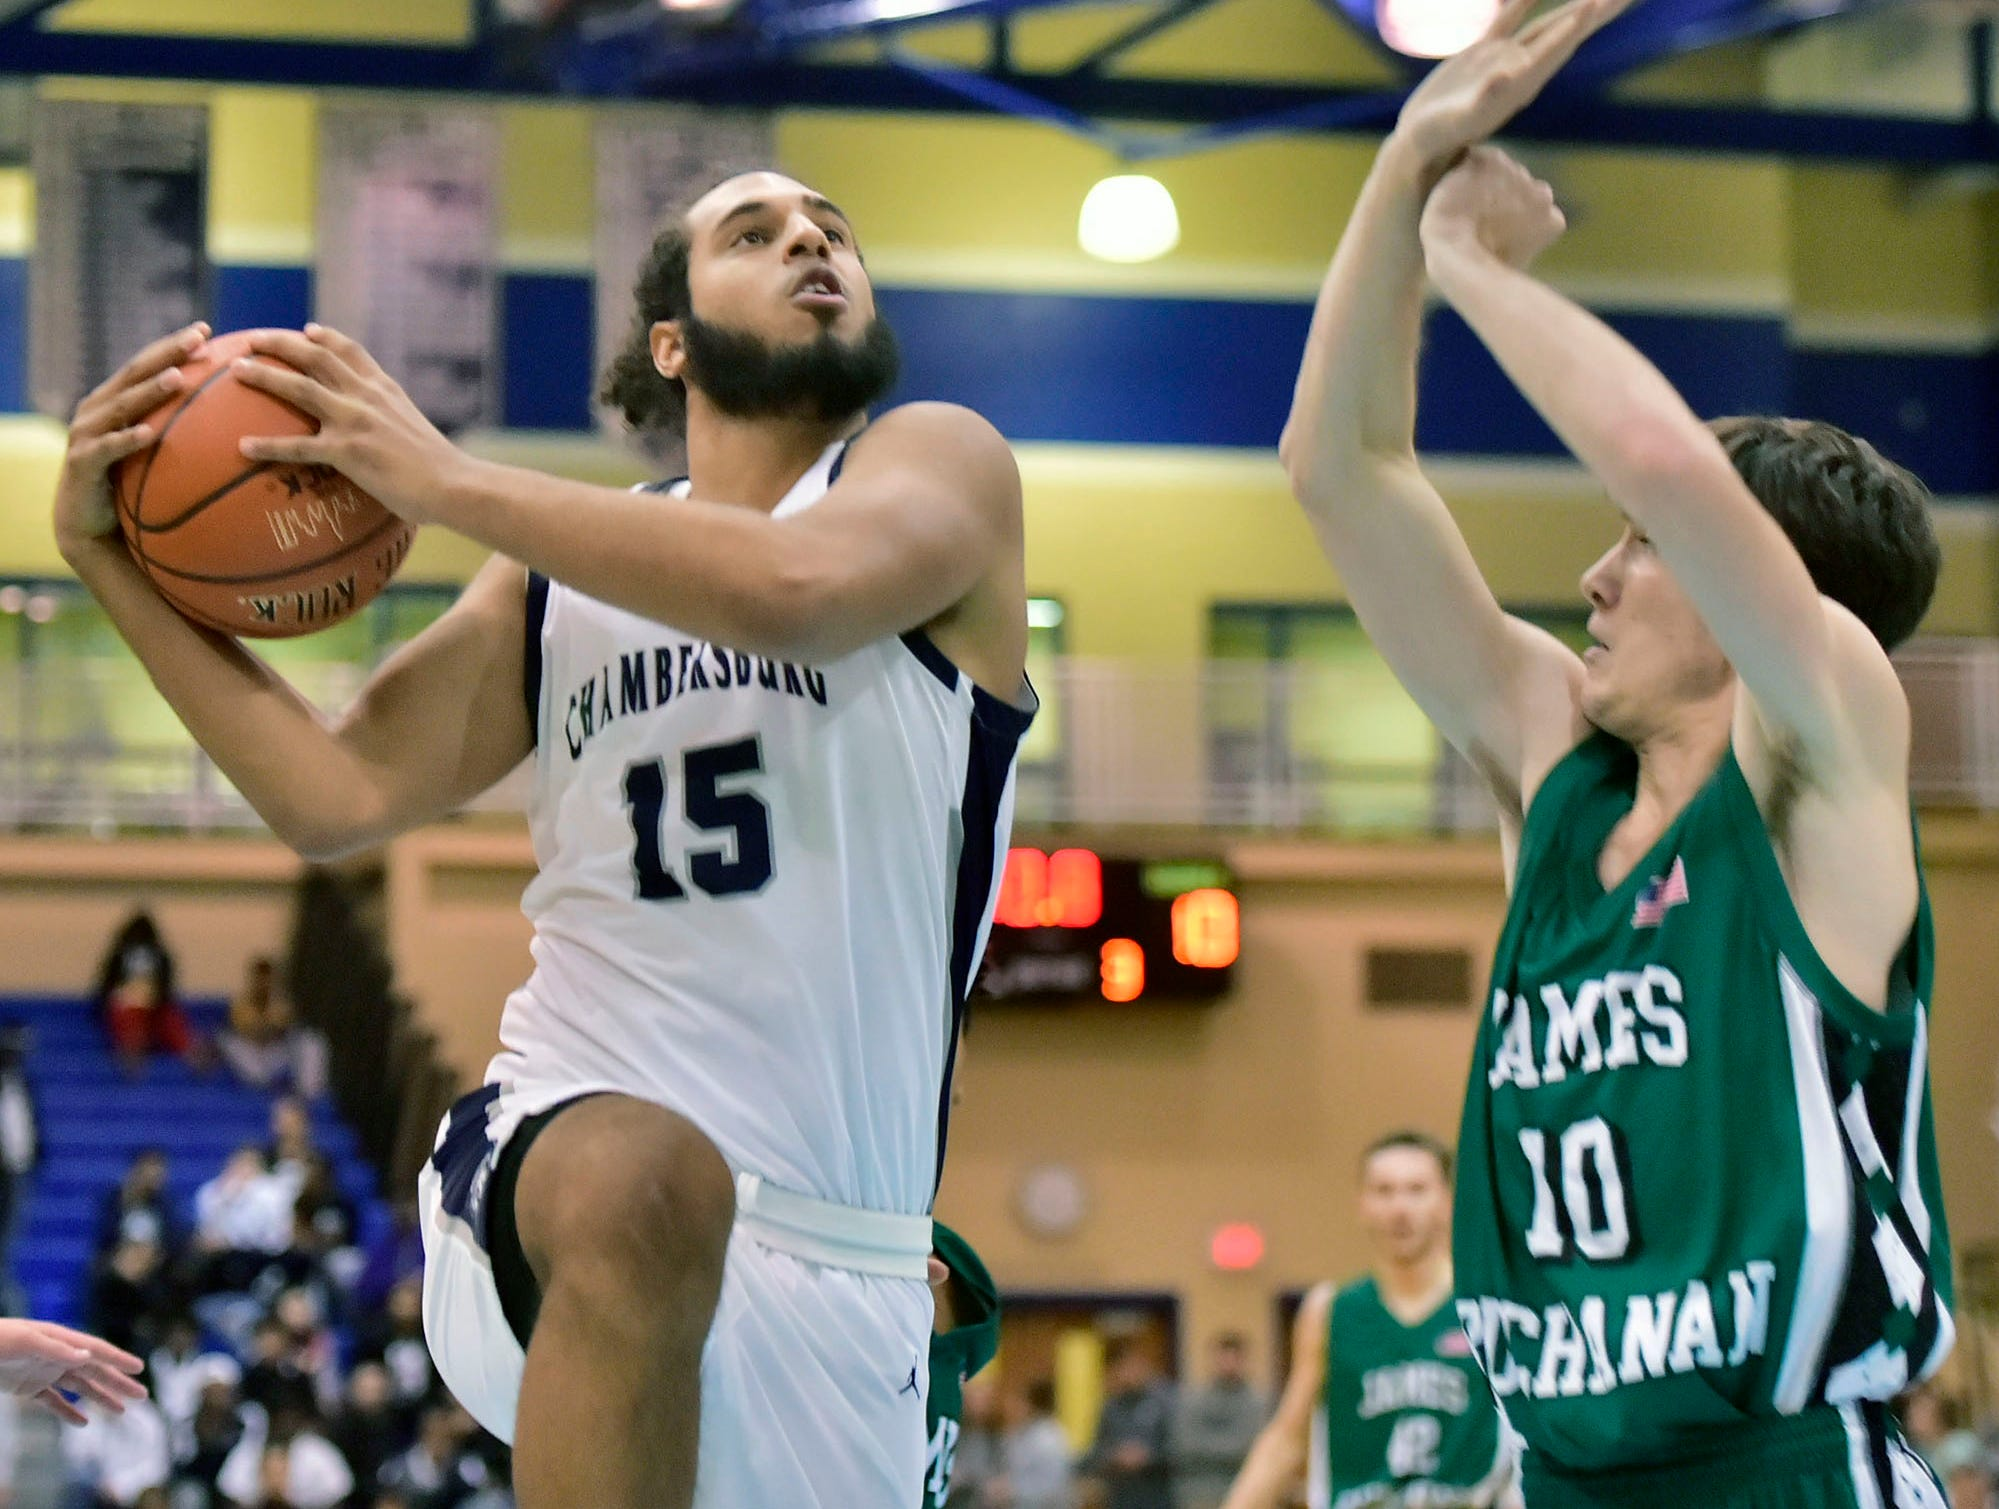 Chambersburg's Tyler Collier (15) drives to the basket as JAmes Buchanan's Dan Corcoran (10) defends.  Chambersburg played James Buchanan boys during the Franklin County Tip-Off Tournament, Friday, Dec. 7, 2018.